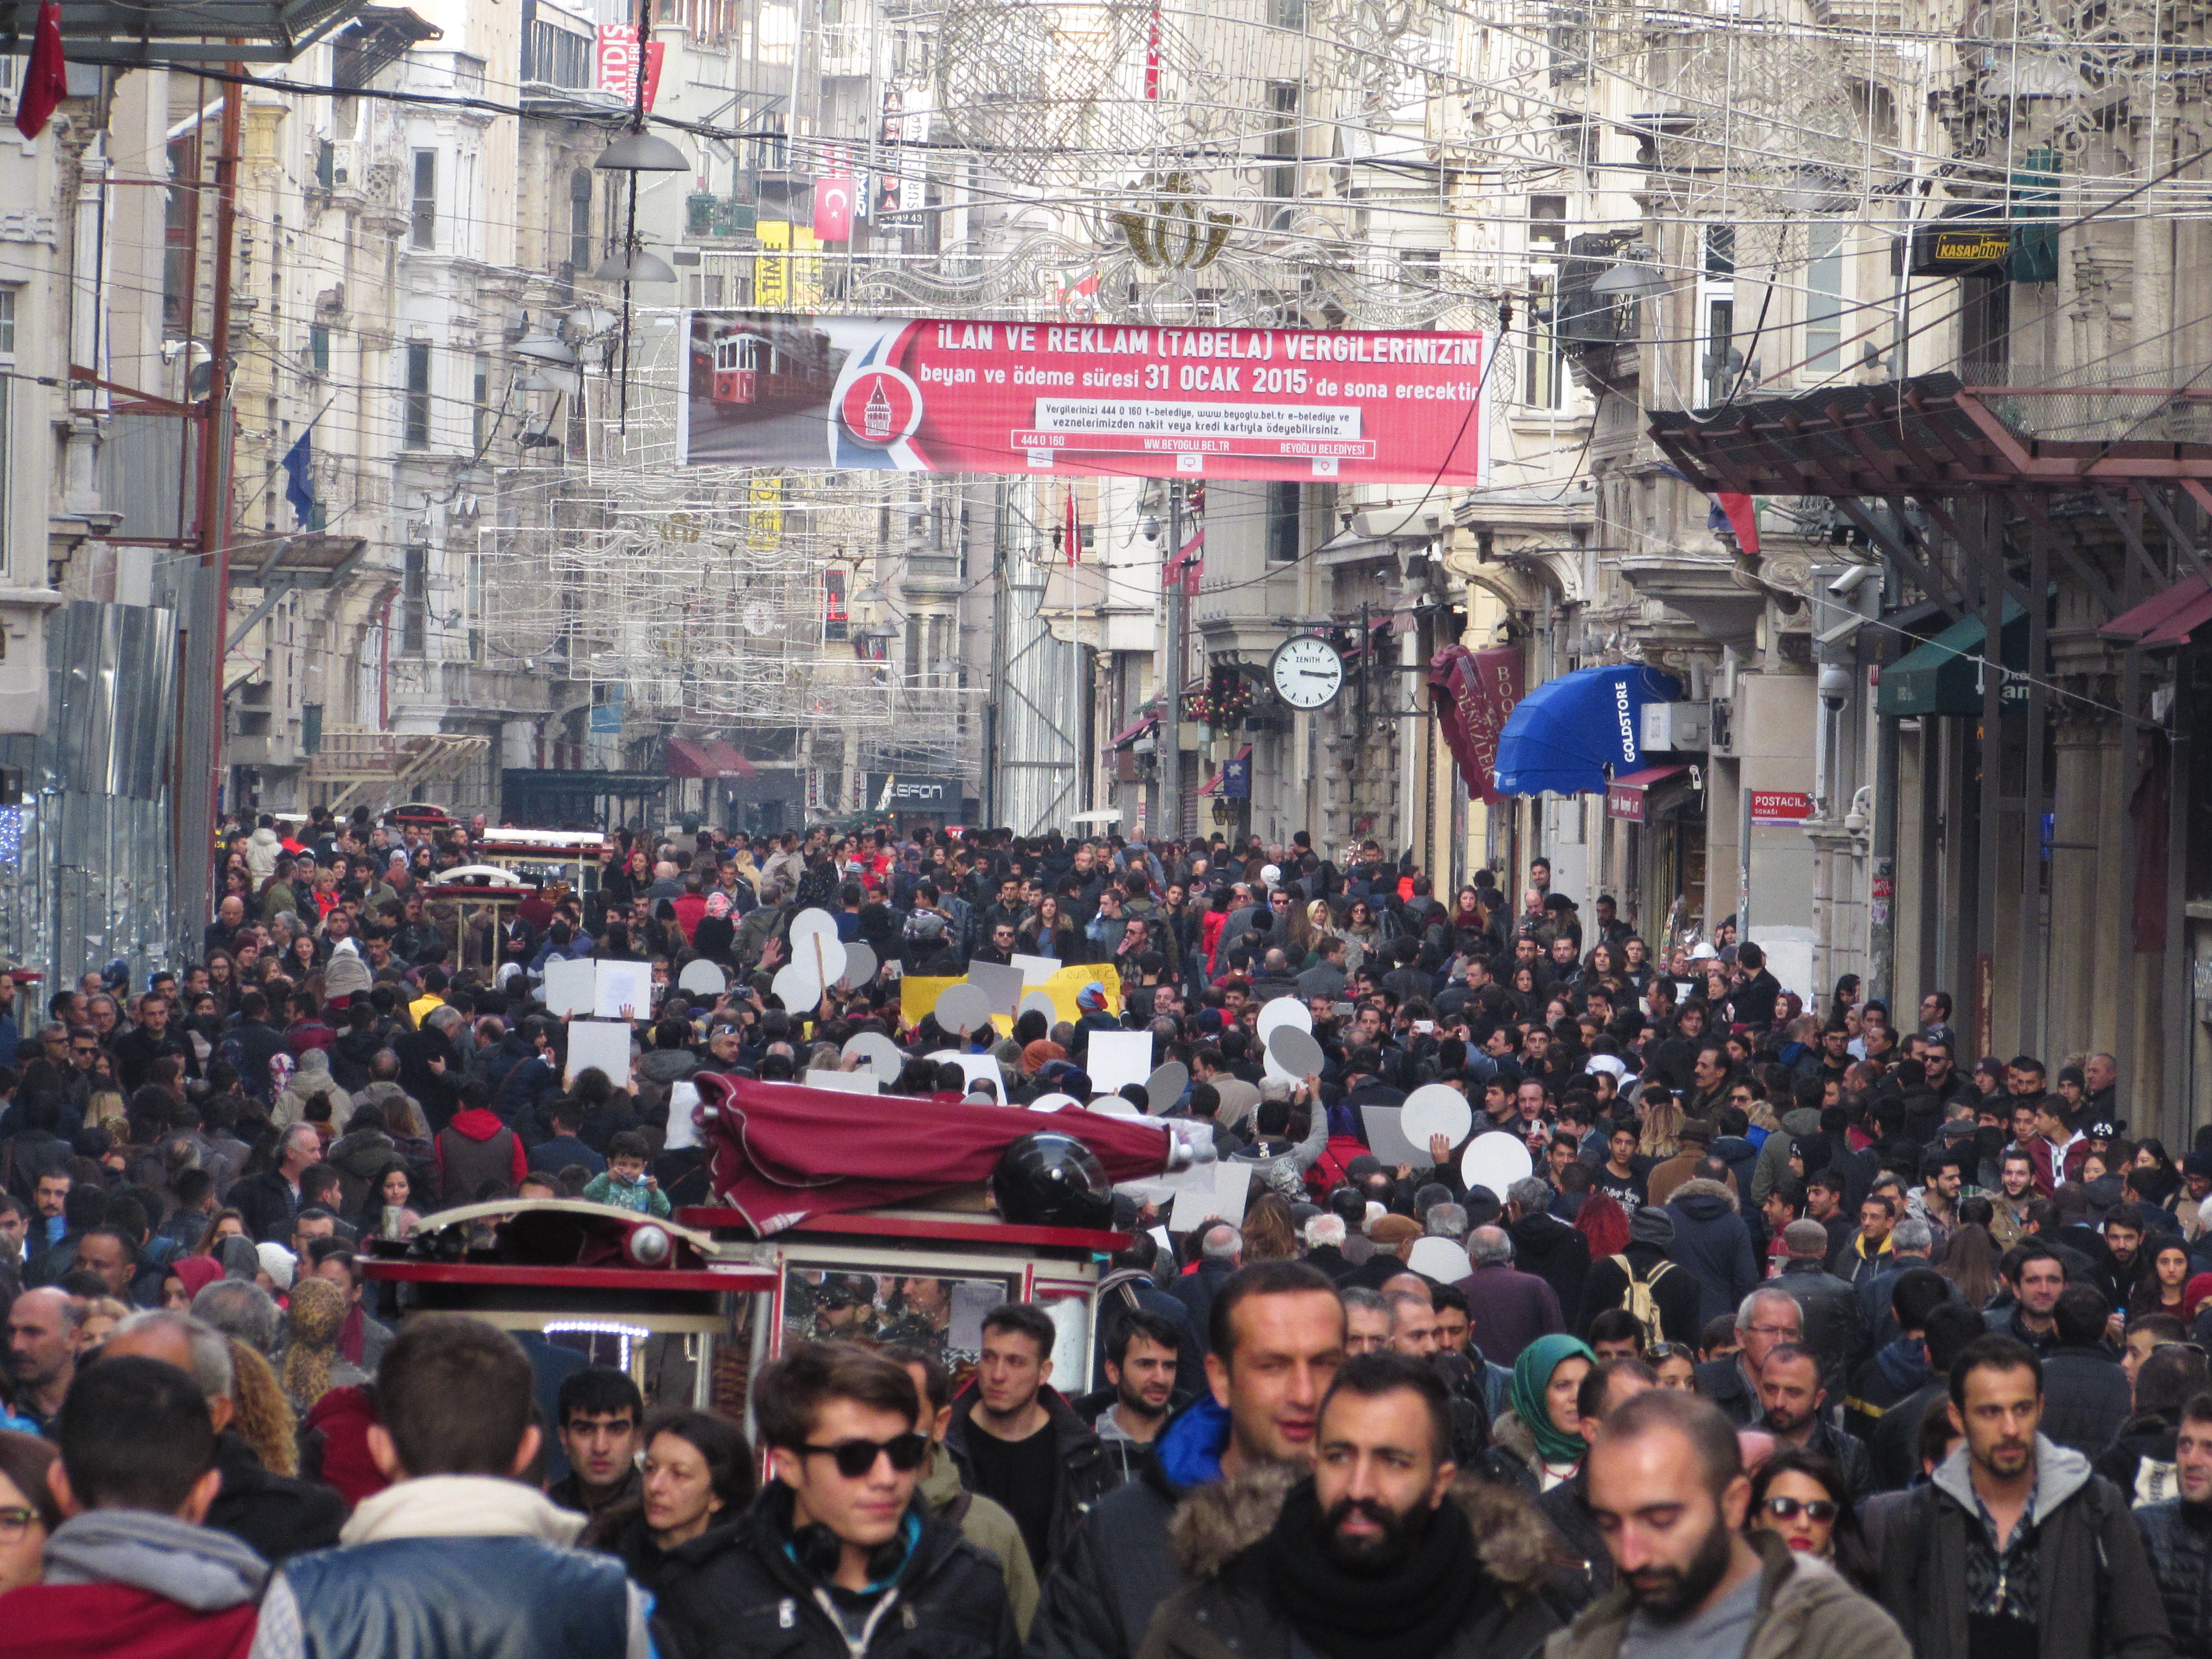 The crowd on Istiklal Street